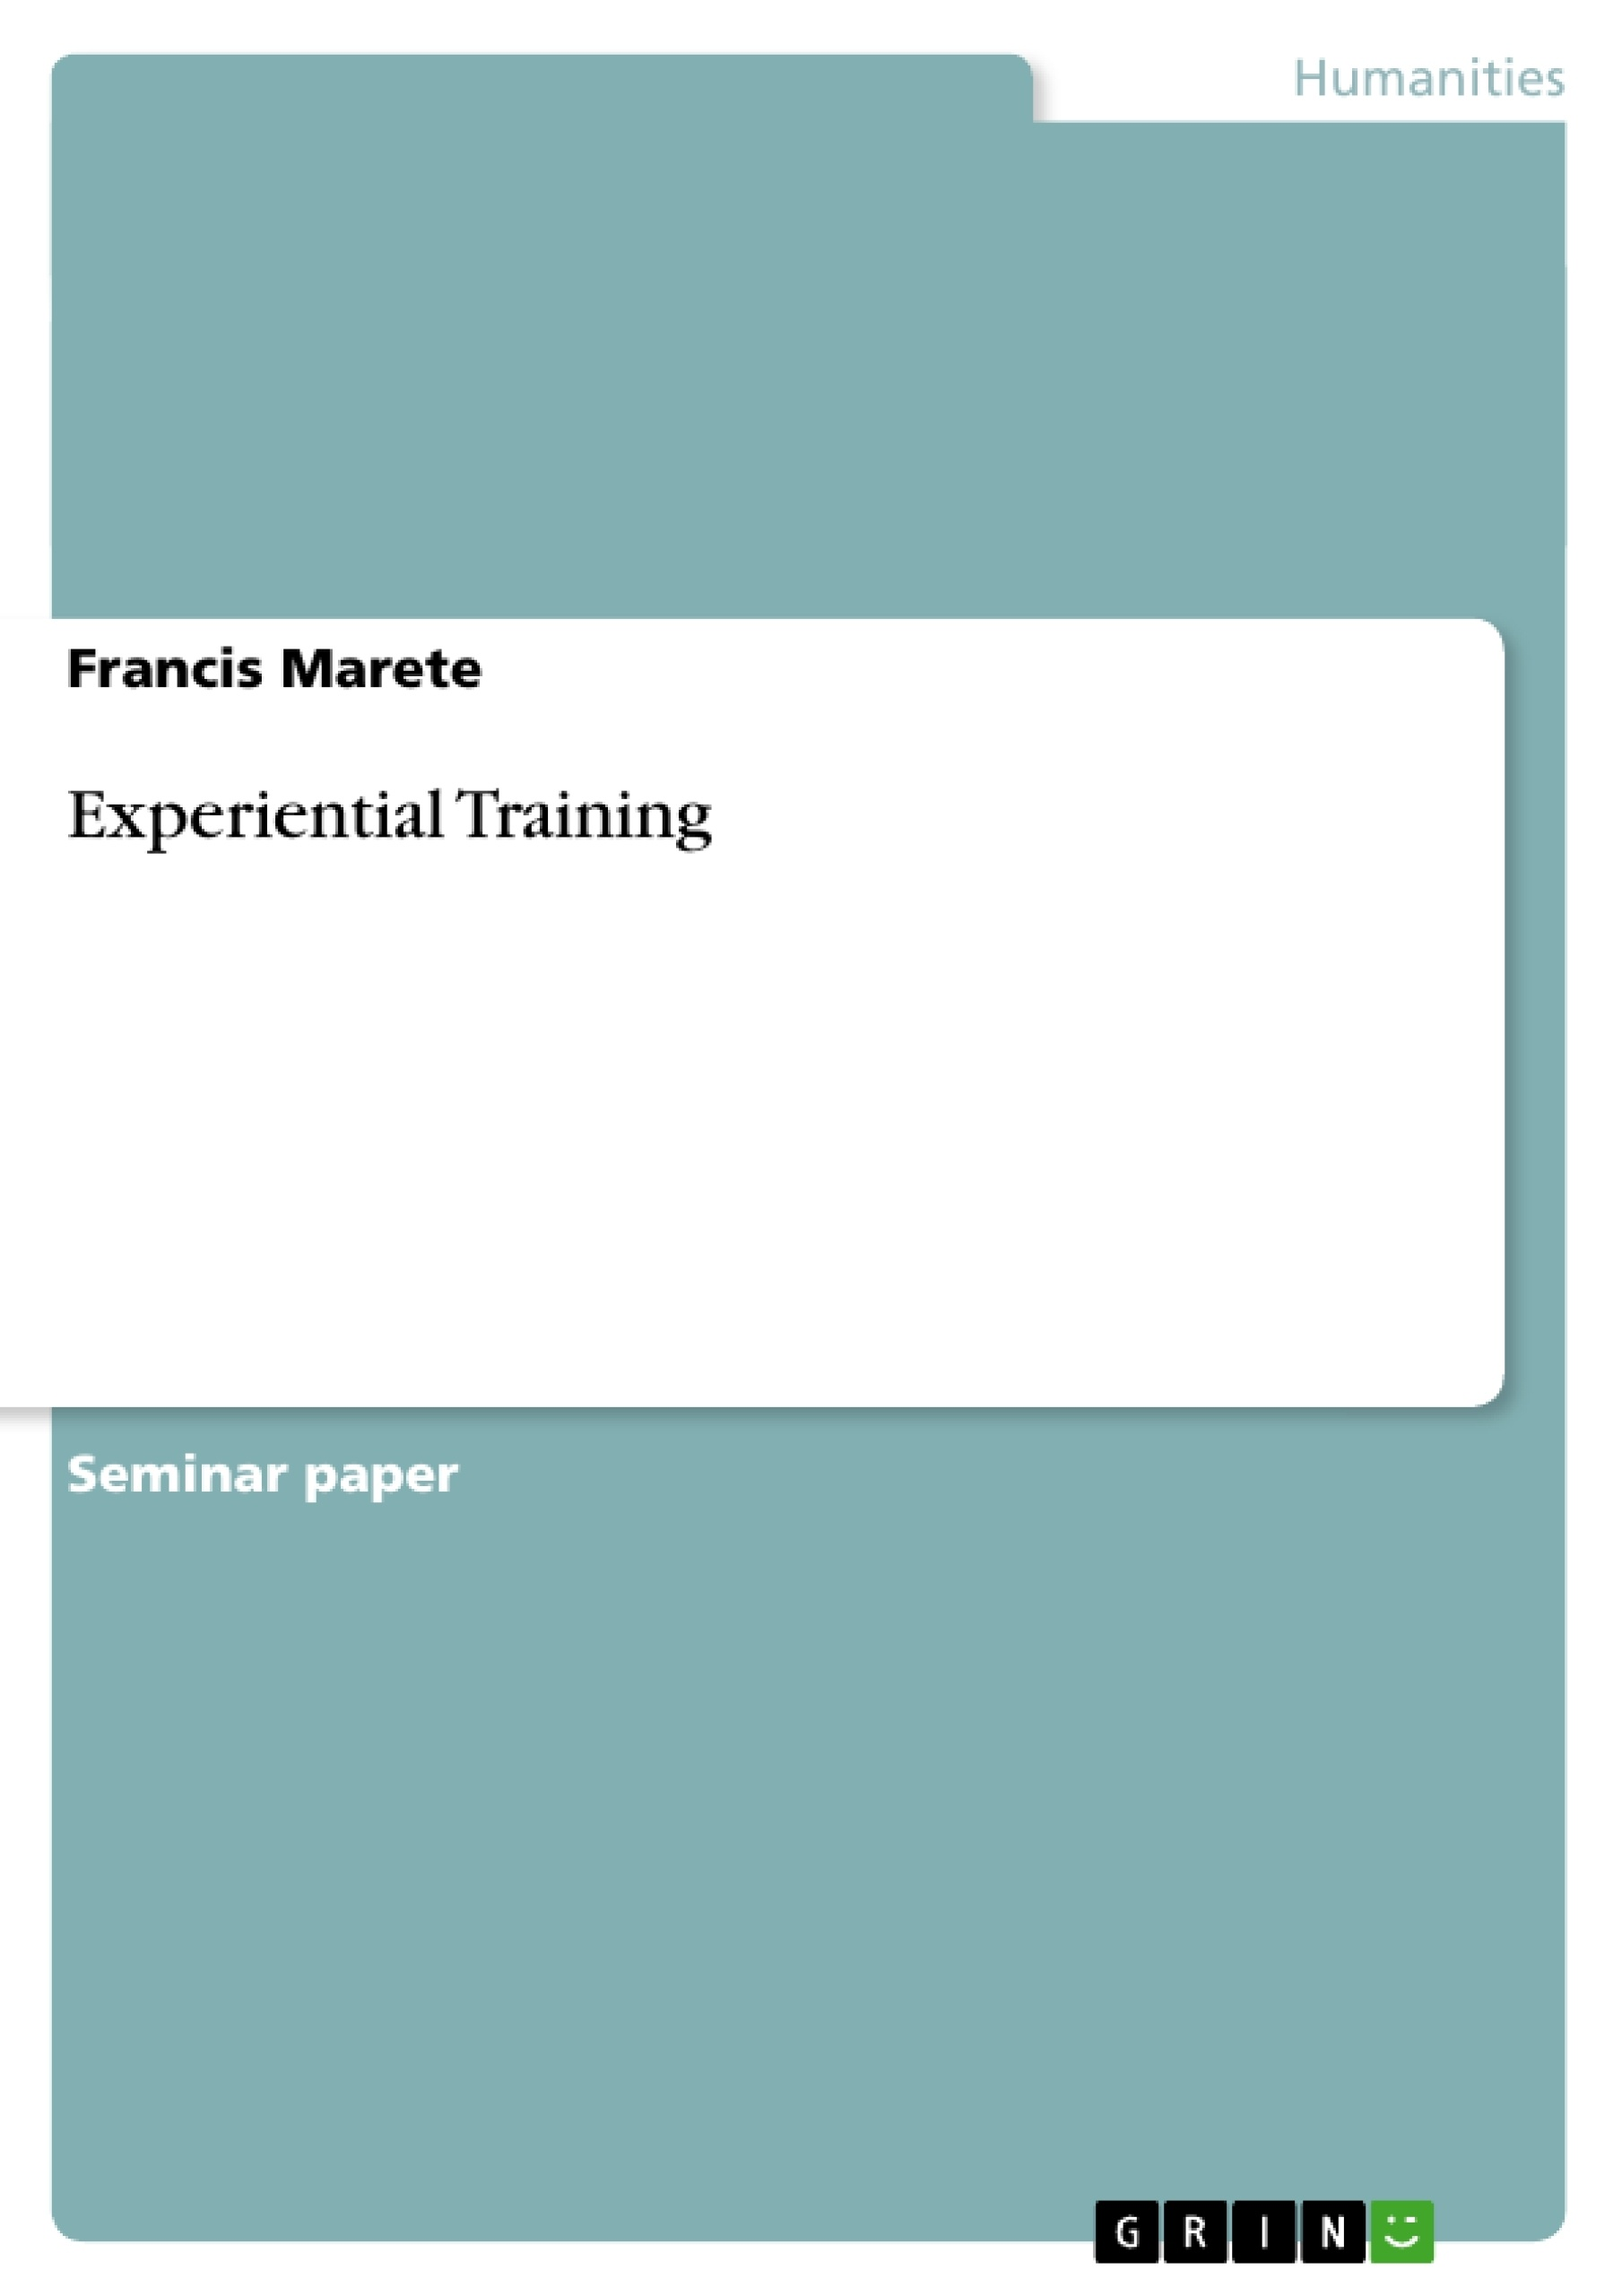 Title: Experiential Training